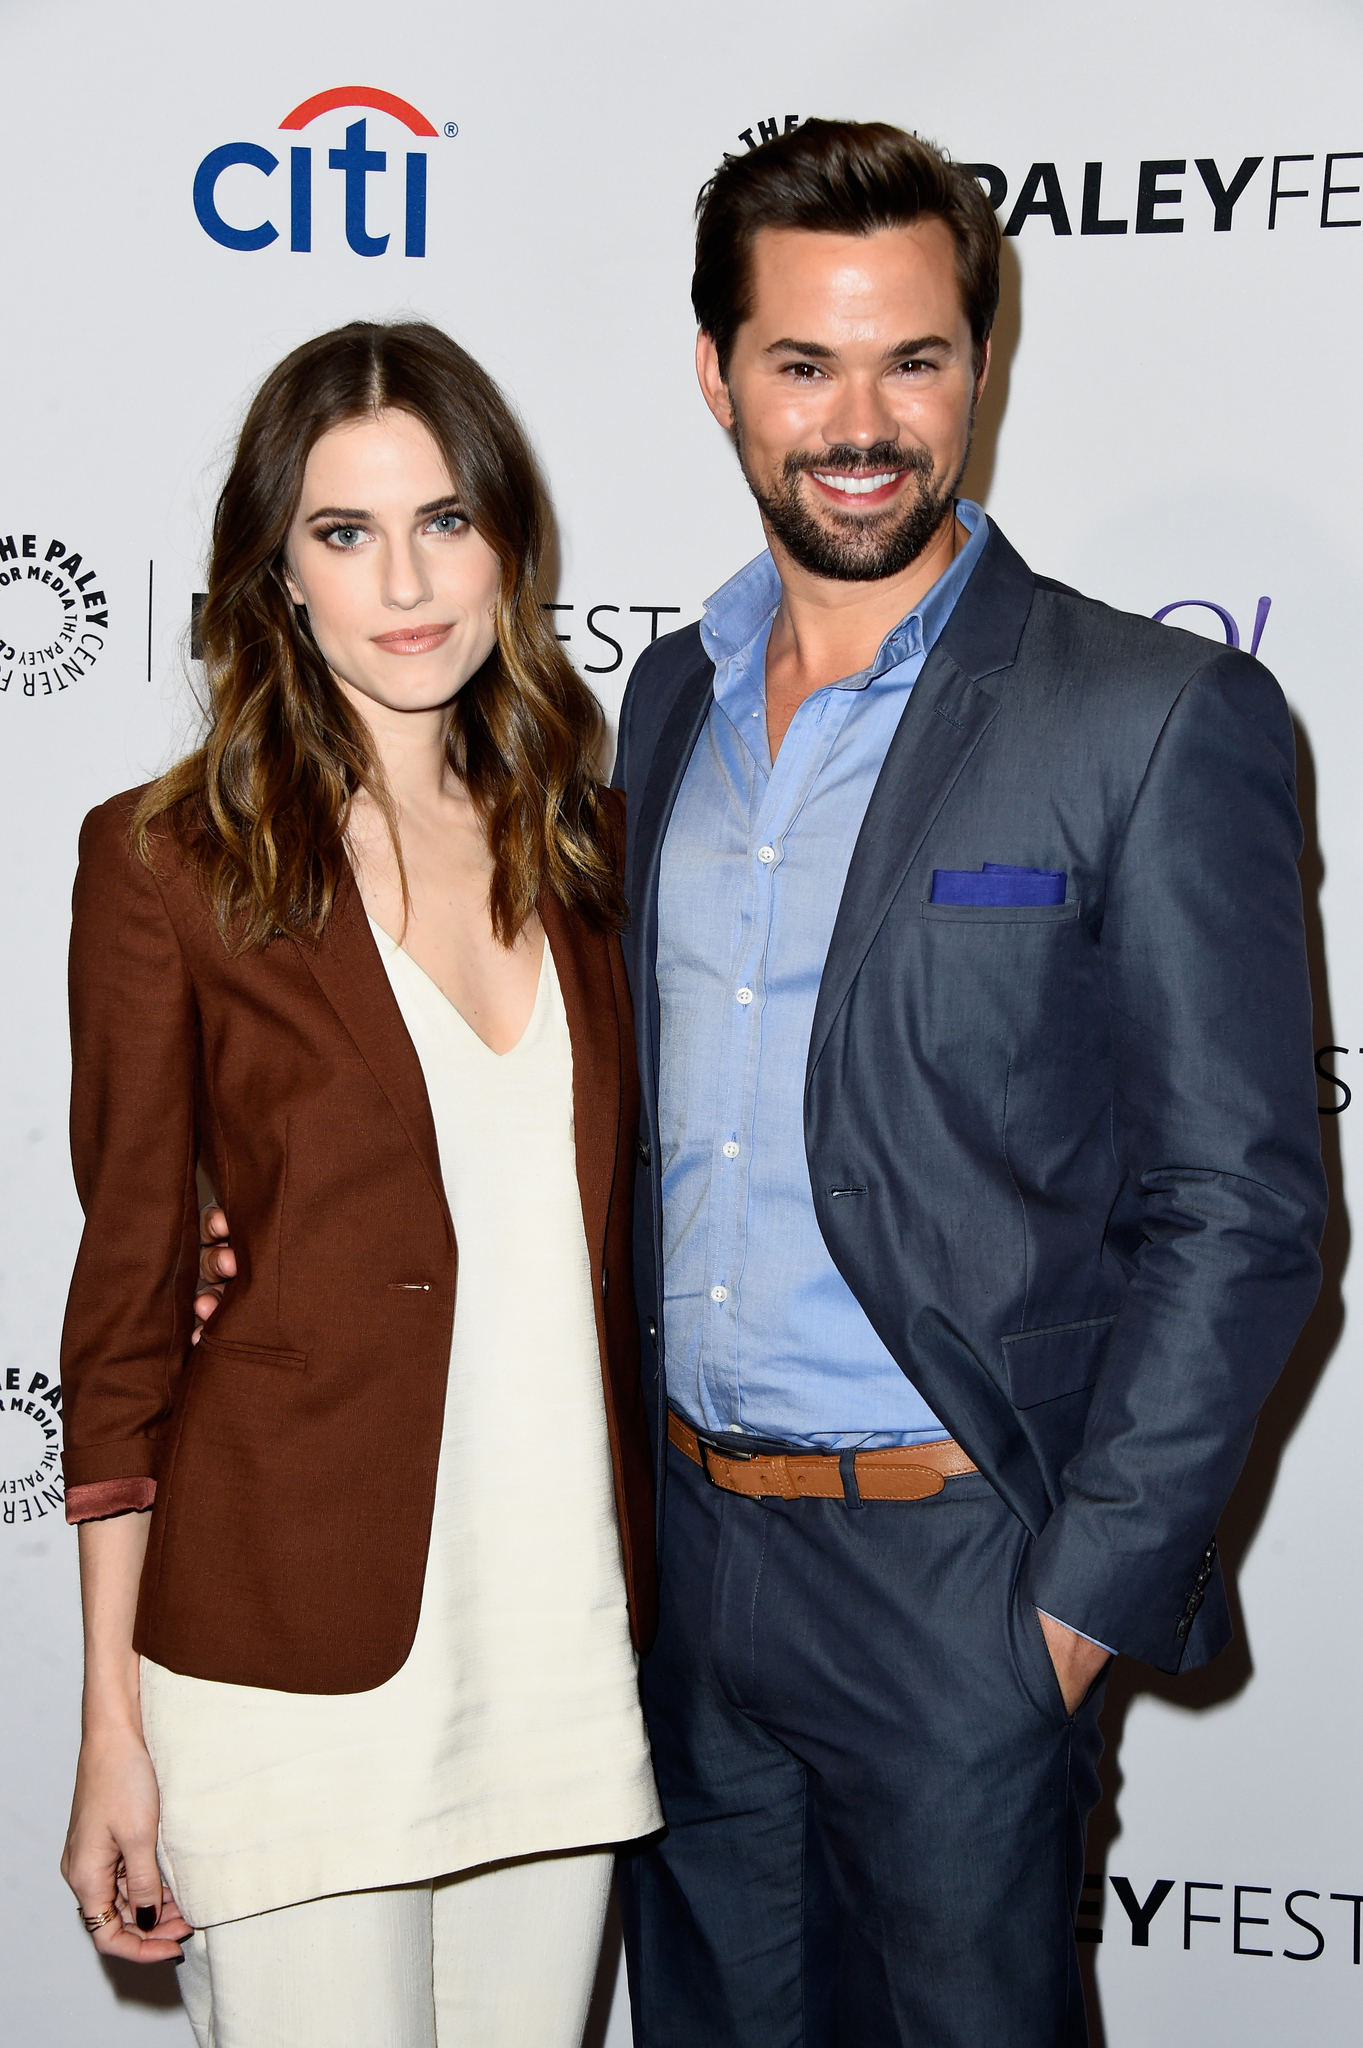 Andrew Rannells and Allison Williams at event of Girls (2012)